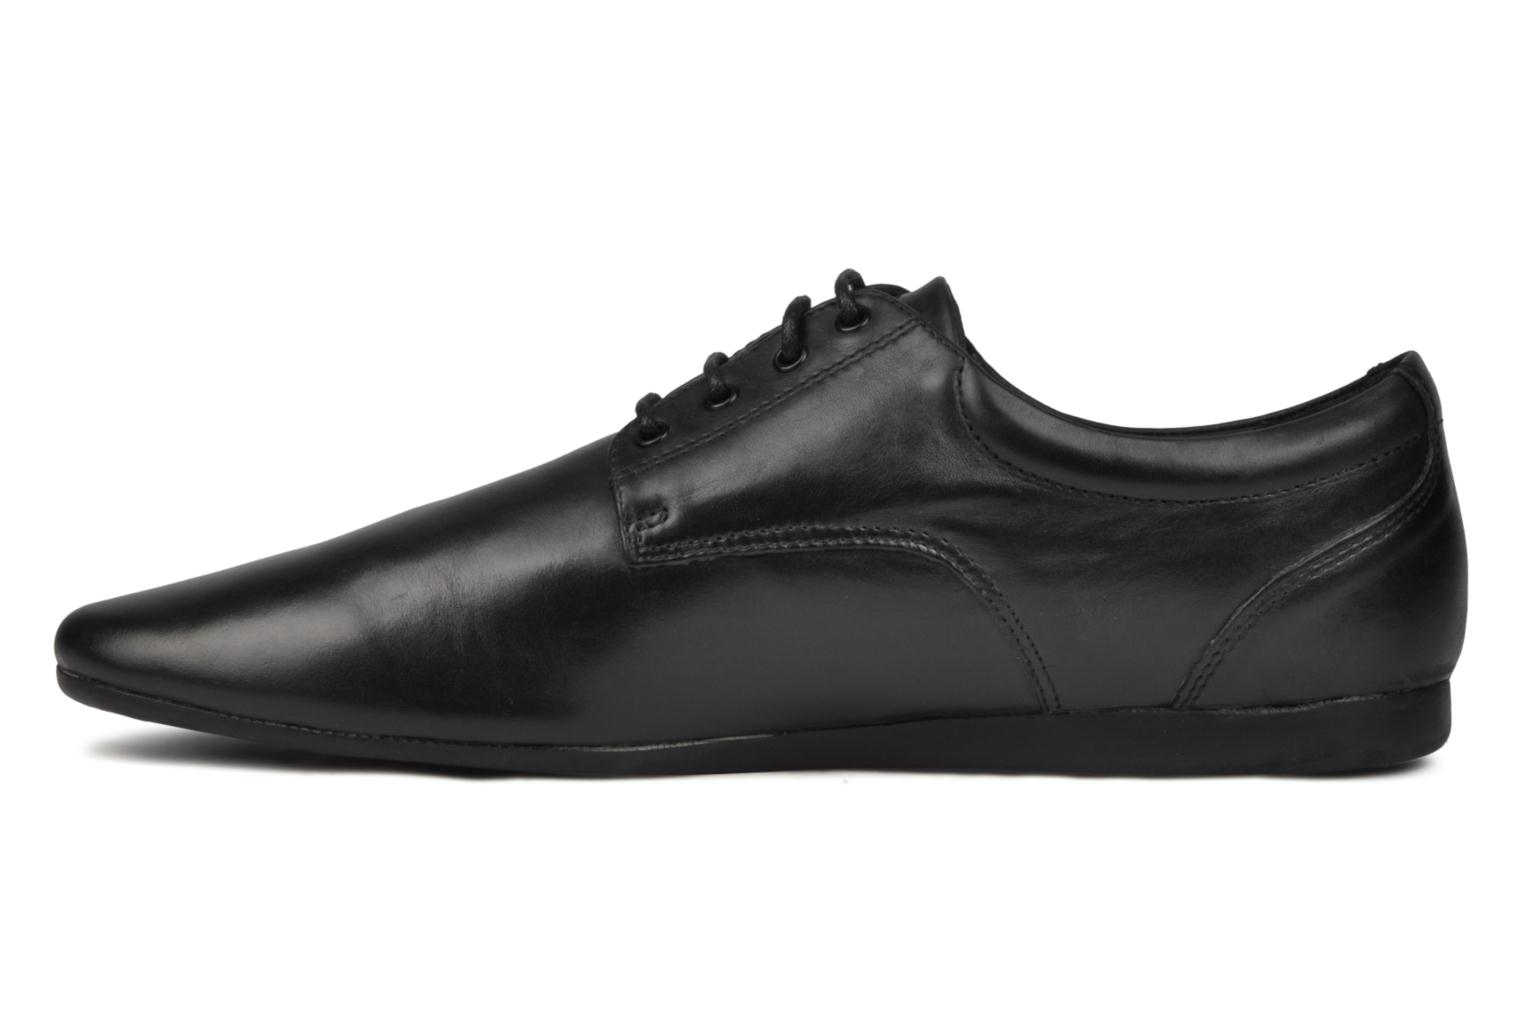 Fidji New Derby Black Sole Black